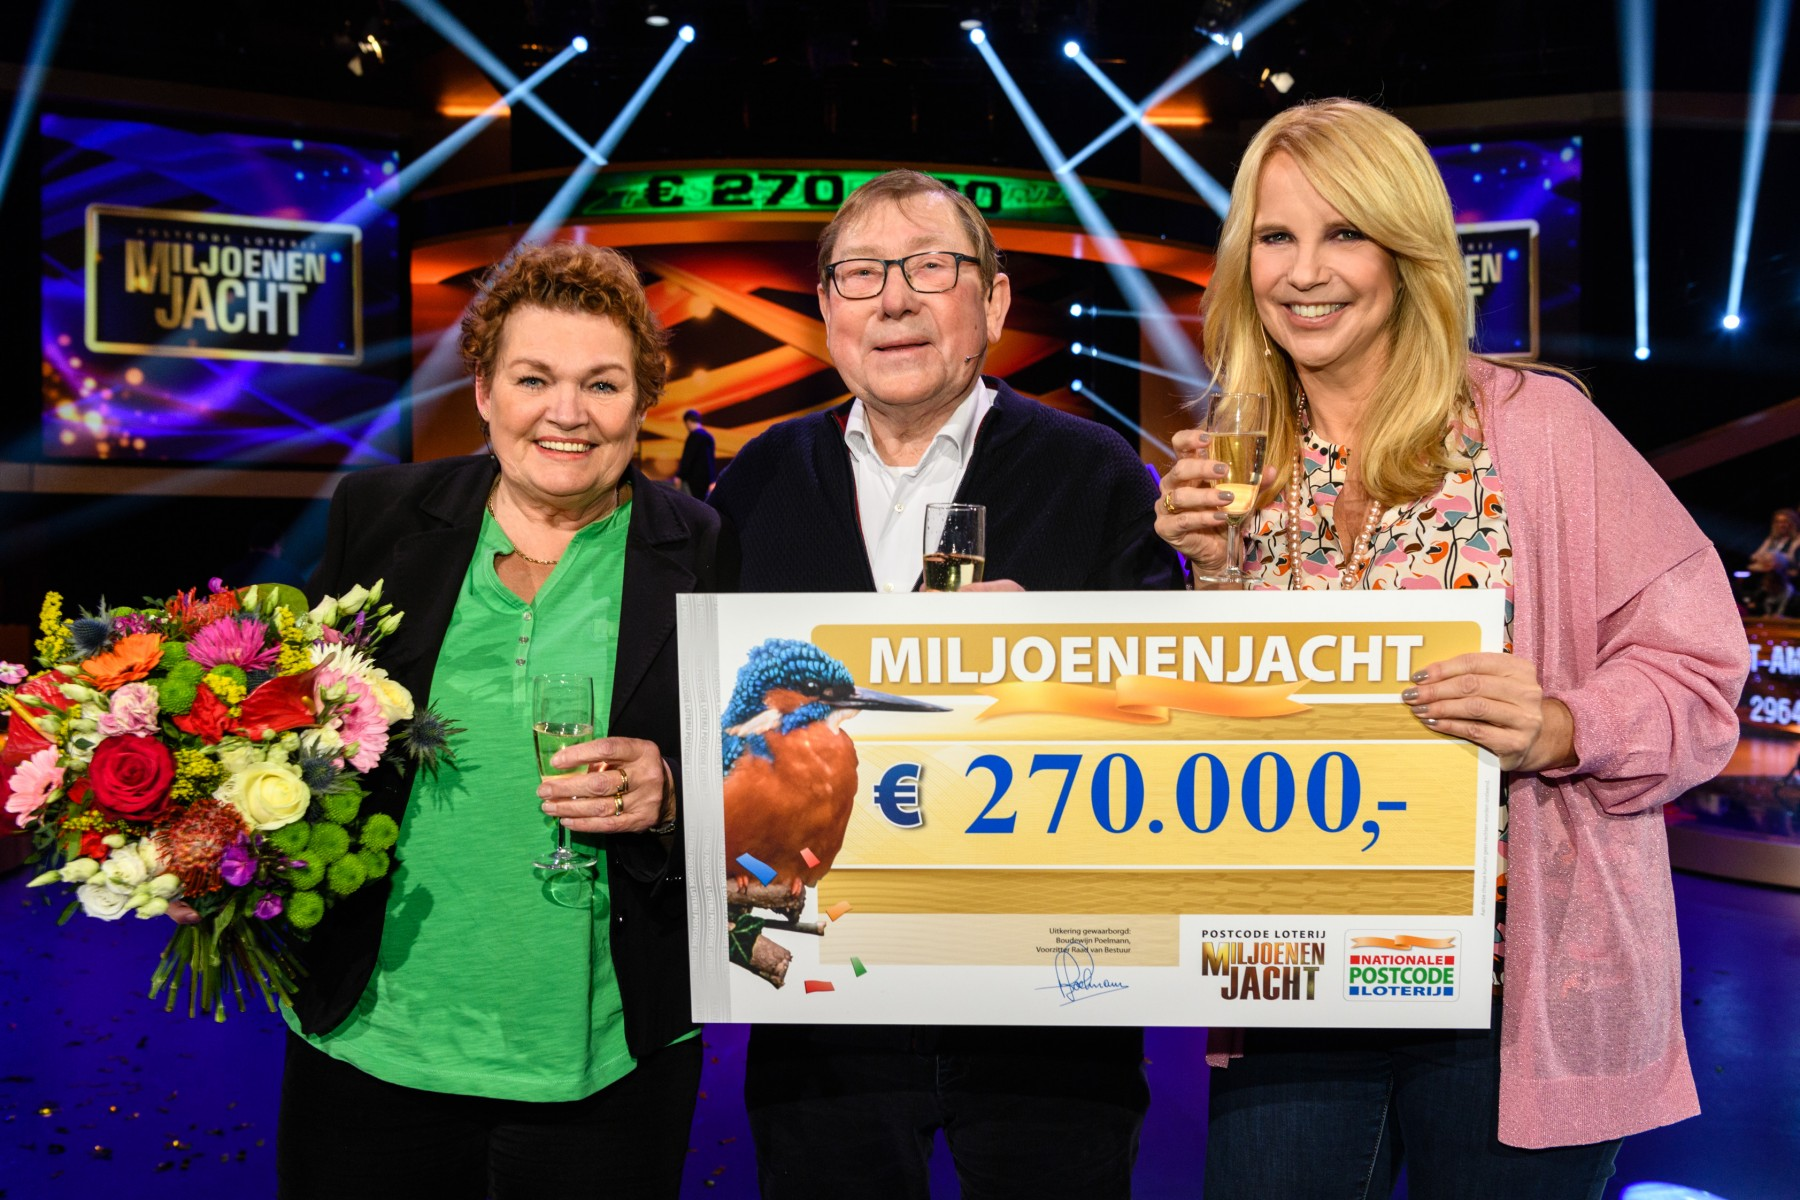 Frits uit Oldenzaal wint 270.000 euro